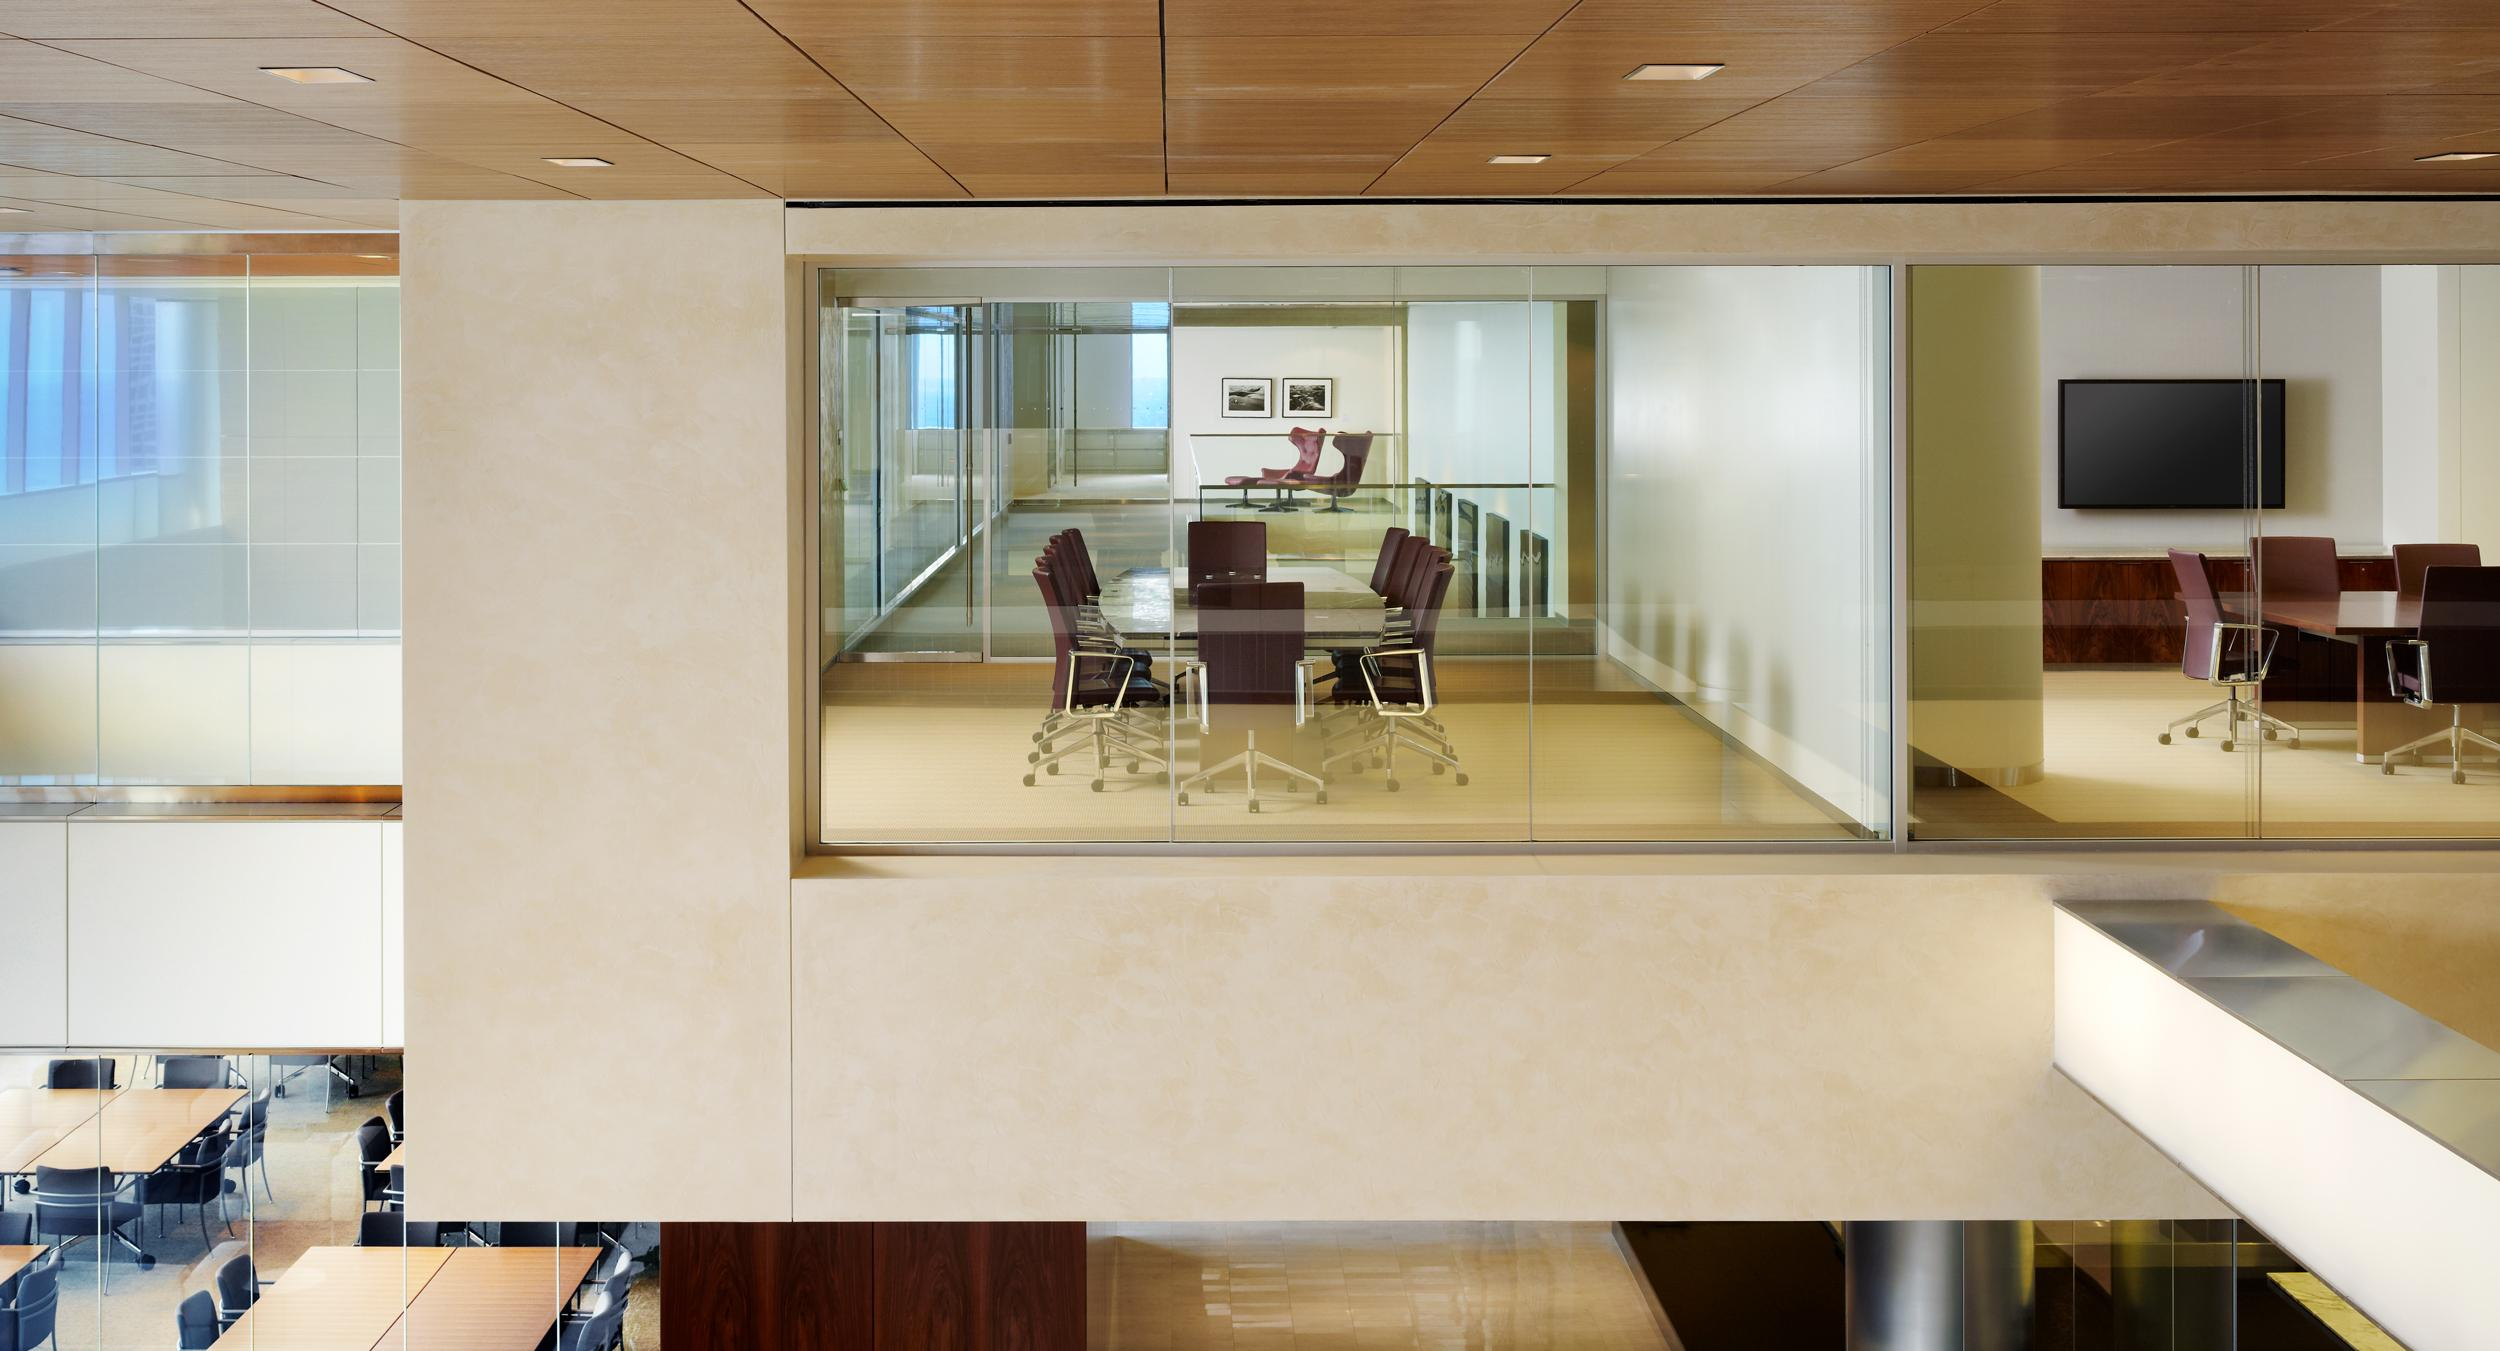 Glass-walled conference rooms overlook airy, beautiful space.